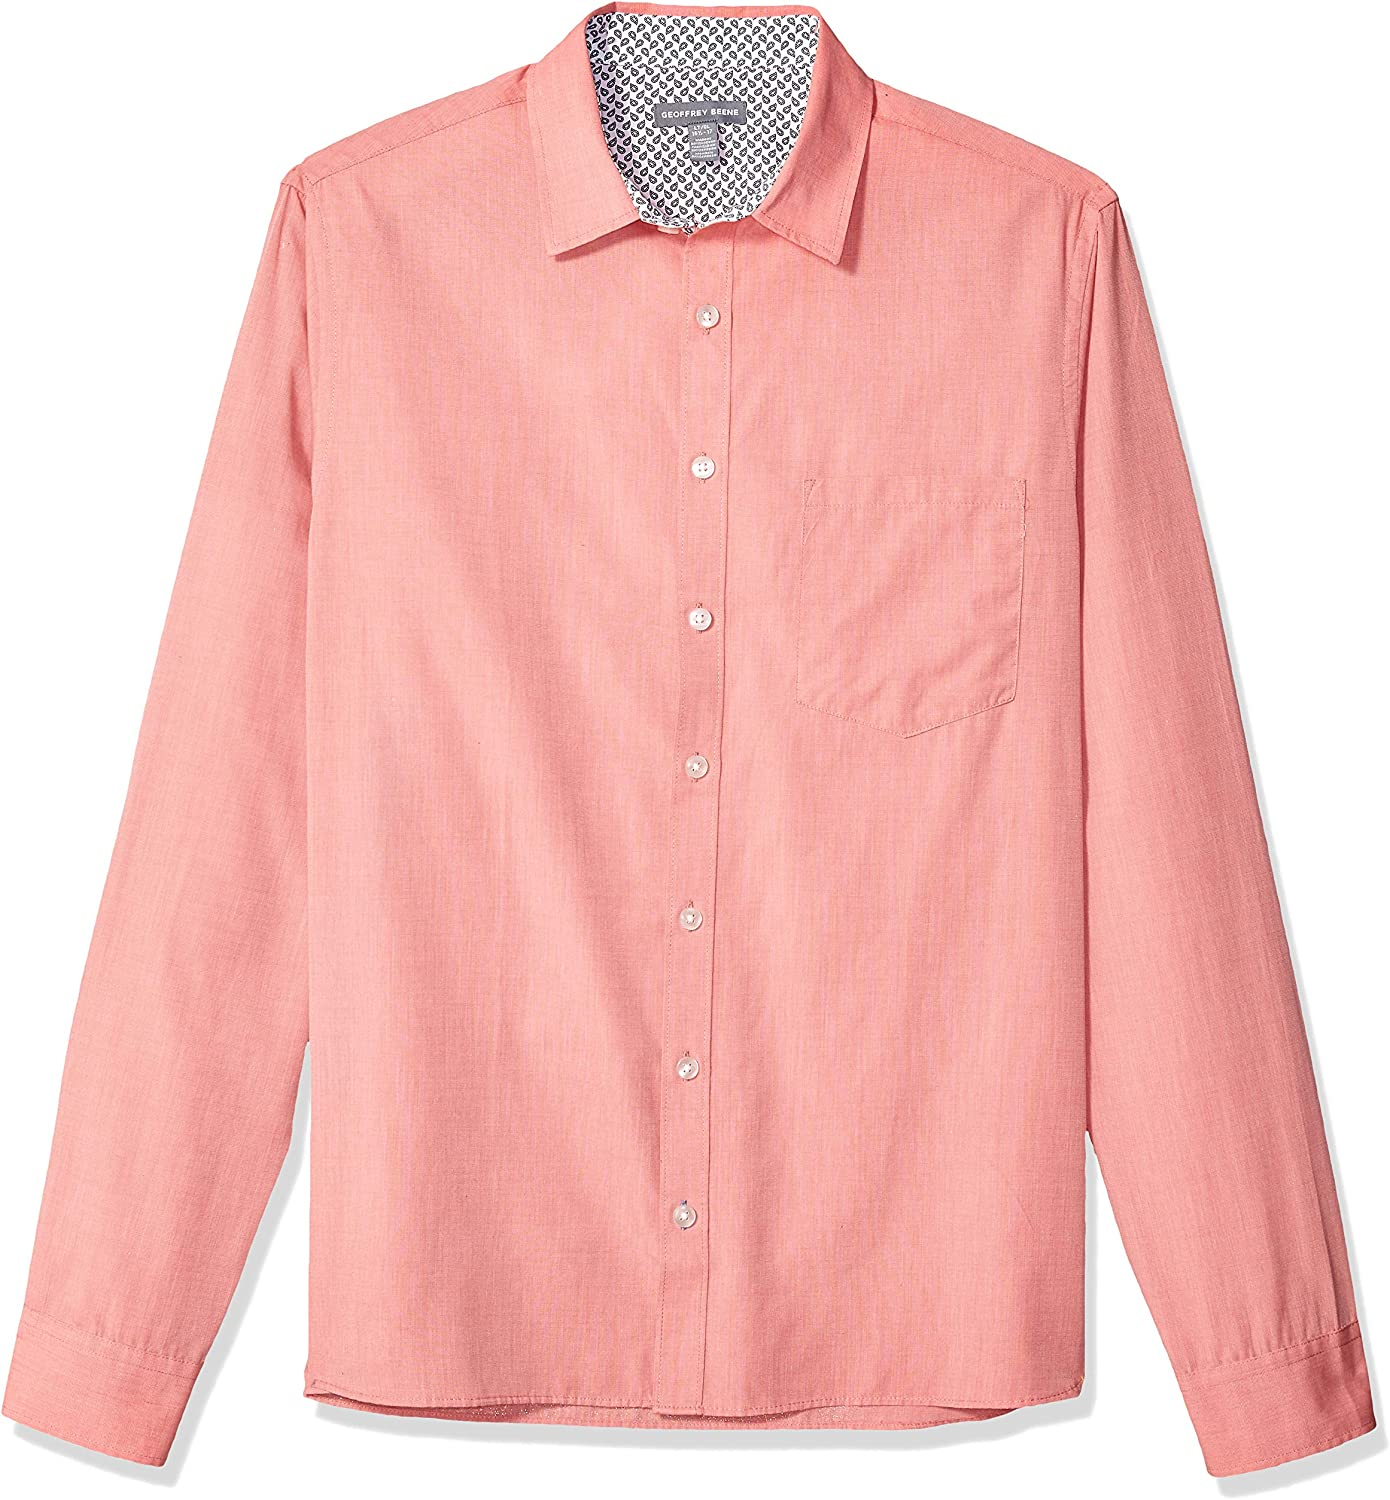 Geoffrey Beene Men's Big and Tall Easy Care Long Sleeve Button Down Shirt